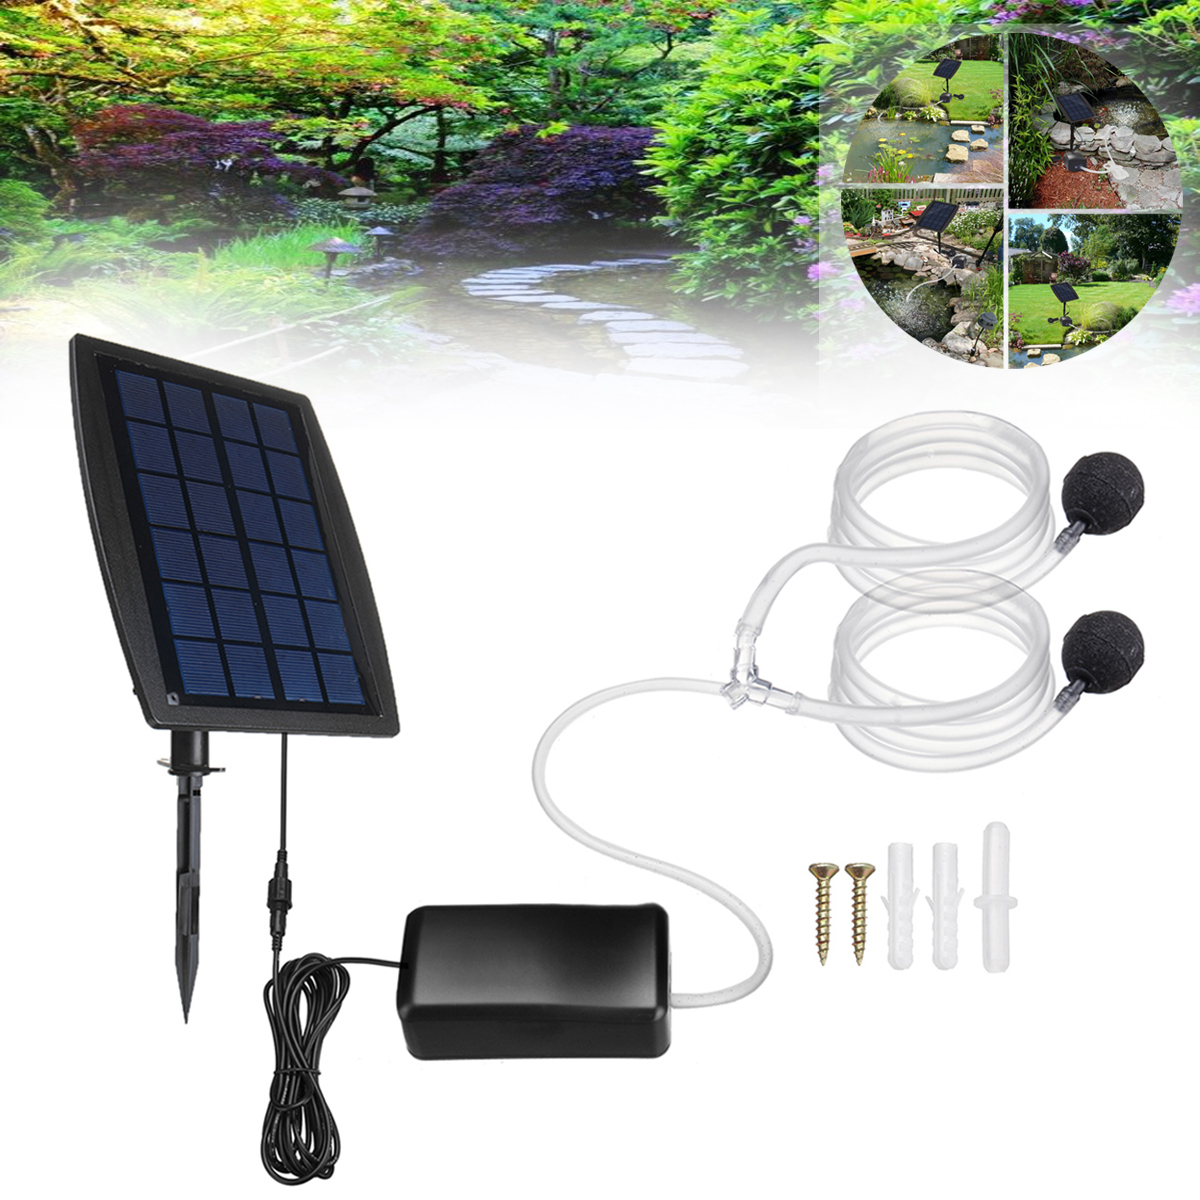 Solar Powered Charging Oxygenator Water Oxygen Pump Pond Aerator with 2 Air Stone Fish Tank Aquarium AirpumpSolar Powered Charging Oxygenator Water Oxygen Pump Pond Aerator with 2 Air Stone Fish Tank Aquarium Airpump